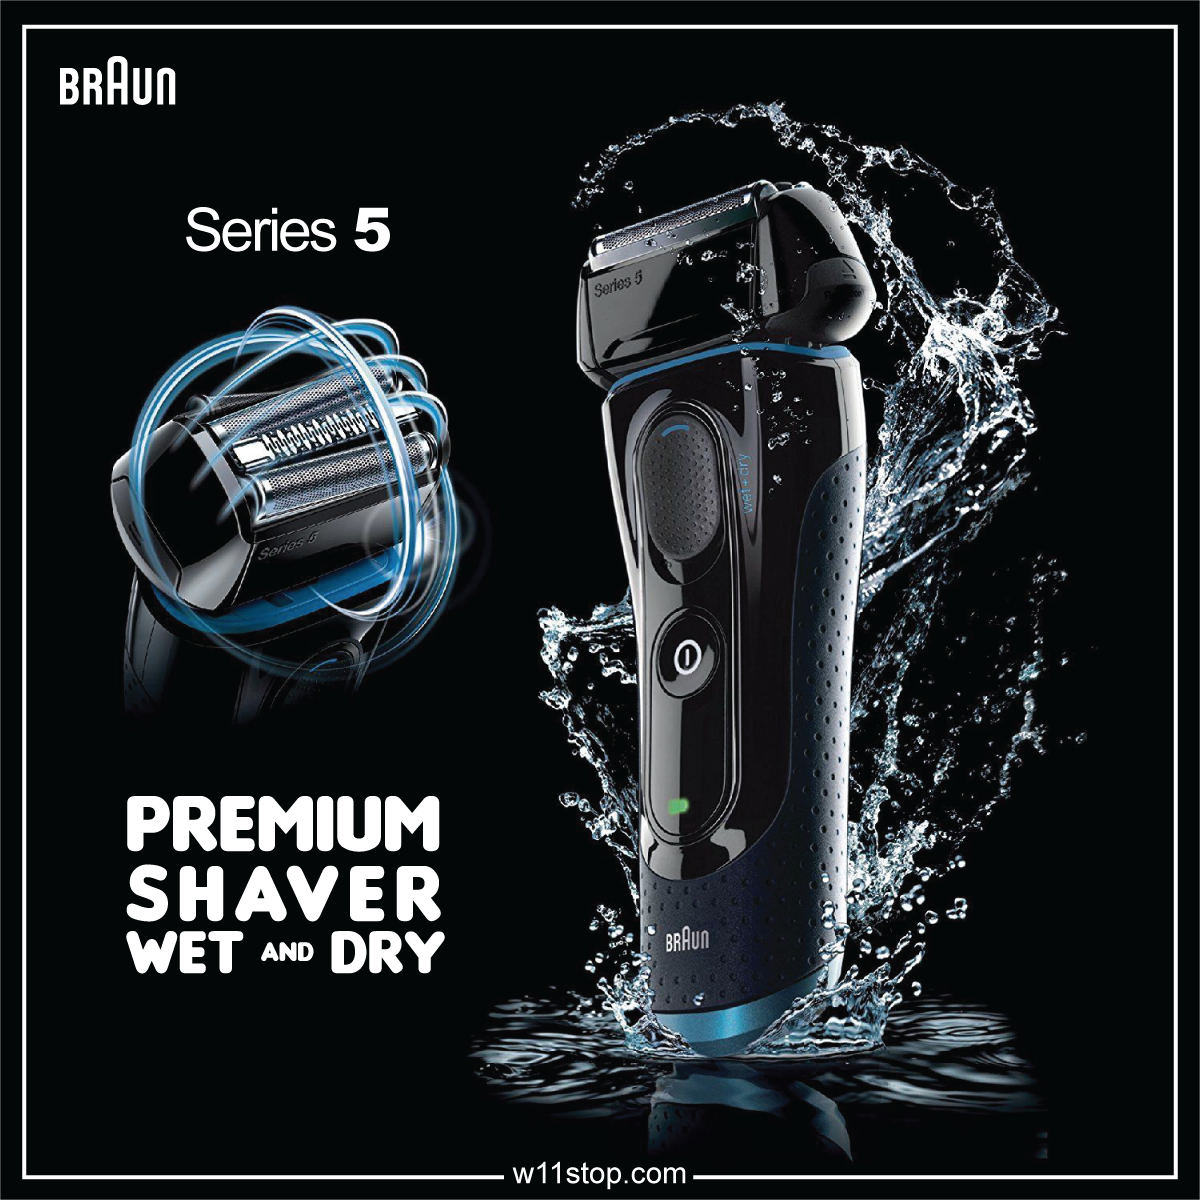 Braun Series 5 Shaver. Succeeds where others fail. Lets